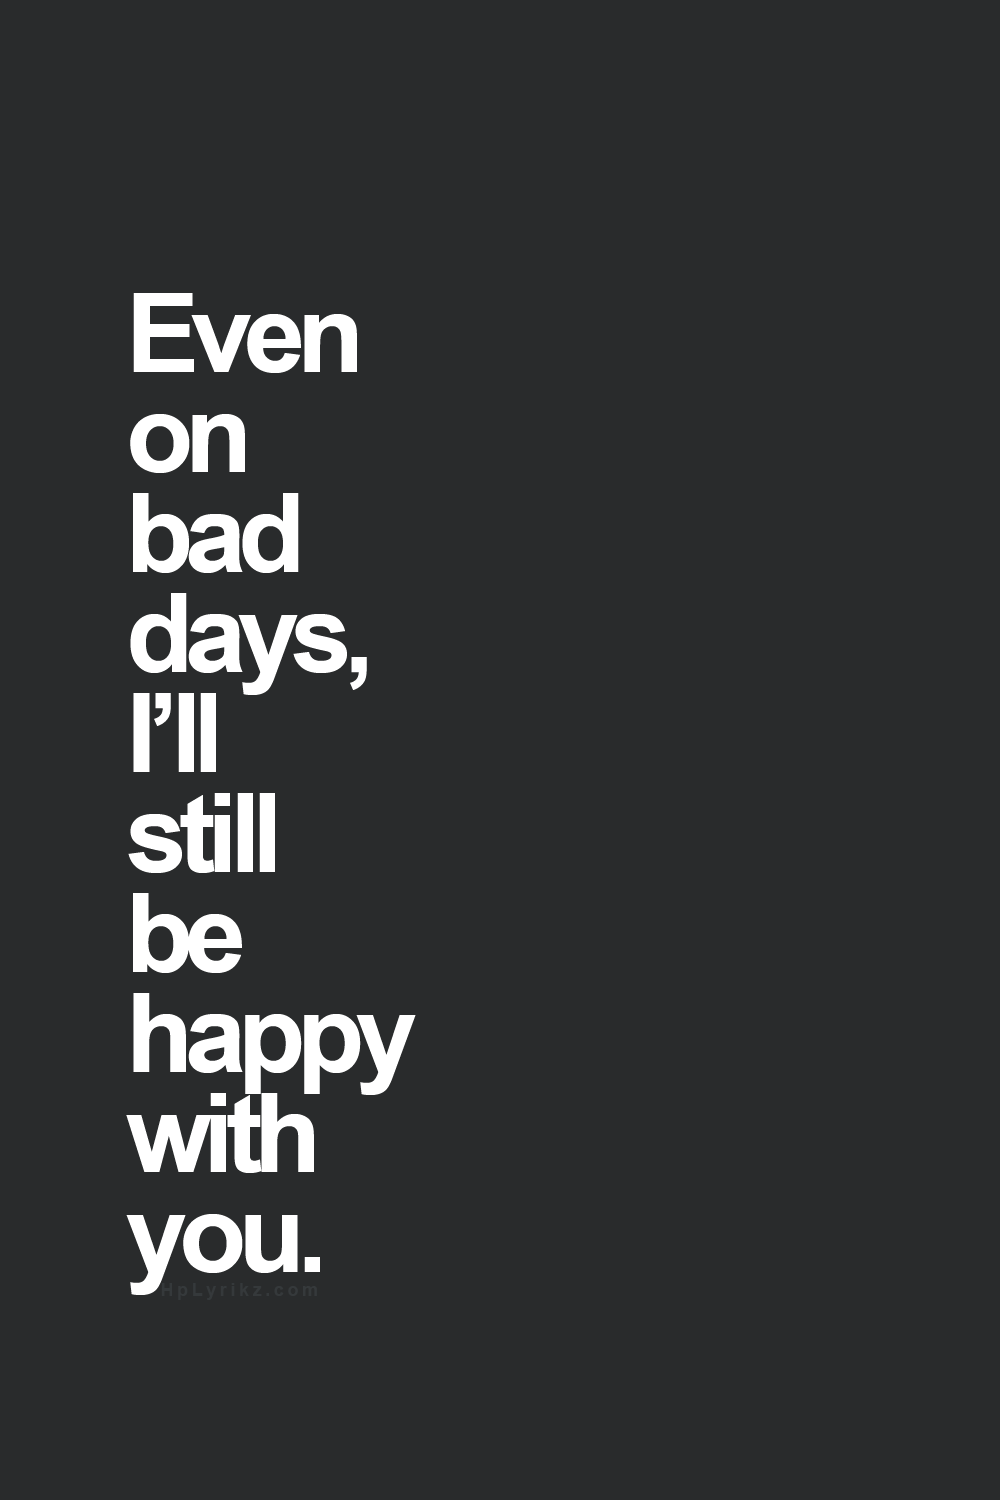 Inspirational Quotes For Bad Days : inspirational, quotes, Days,, Still, Happy, Relationship, Quotes,, Inspirational, Quotes